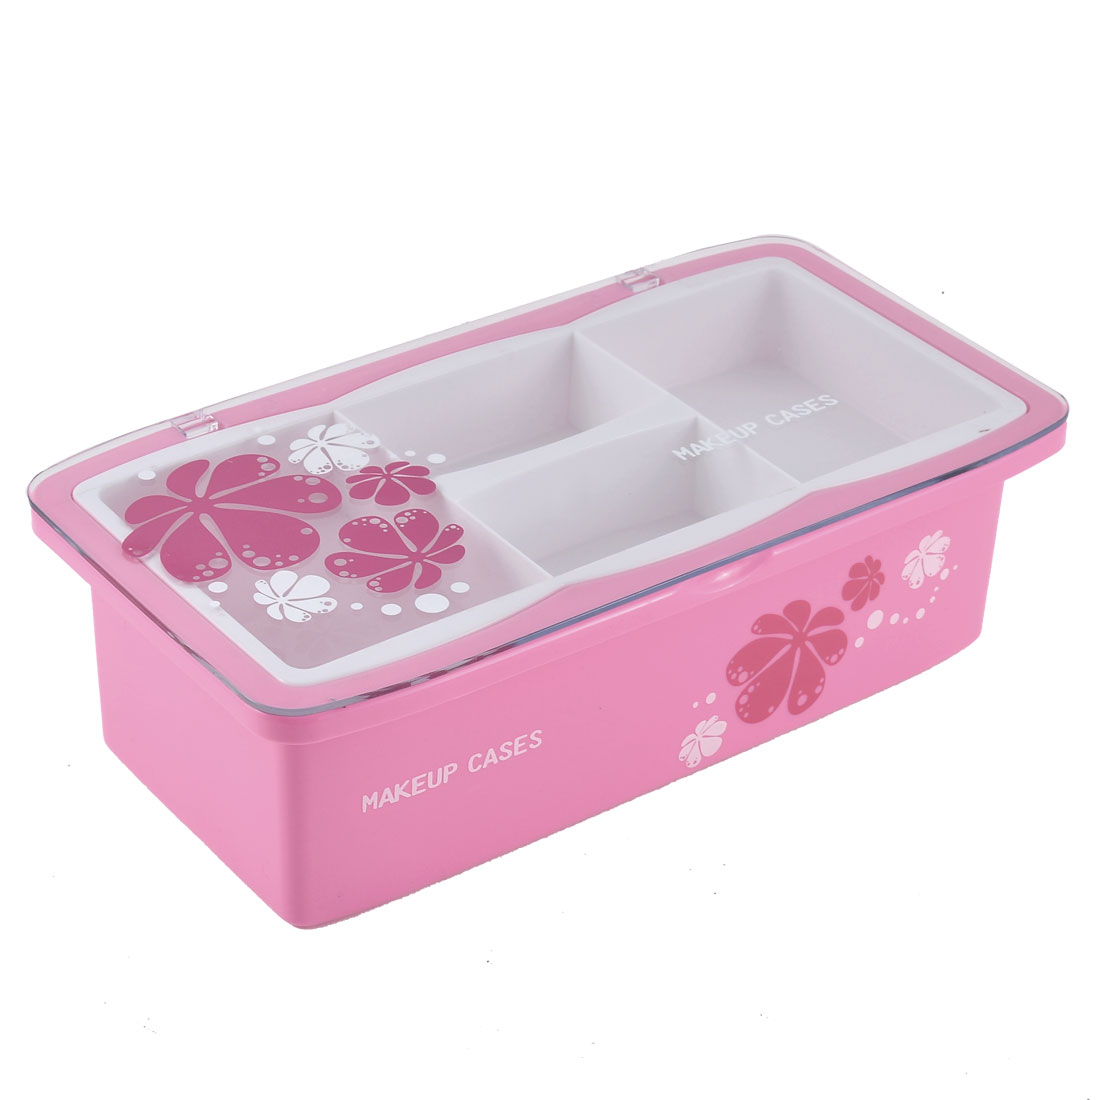 Home Dresser Flower Prints Plastic Two Layers Cosmetic Makeup Case Box Container Pink